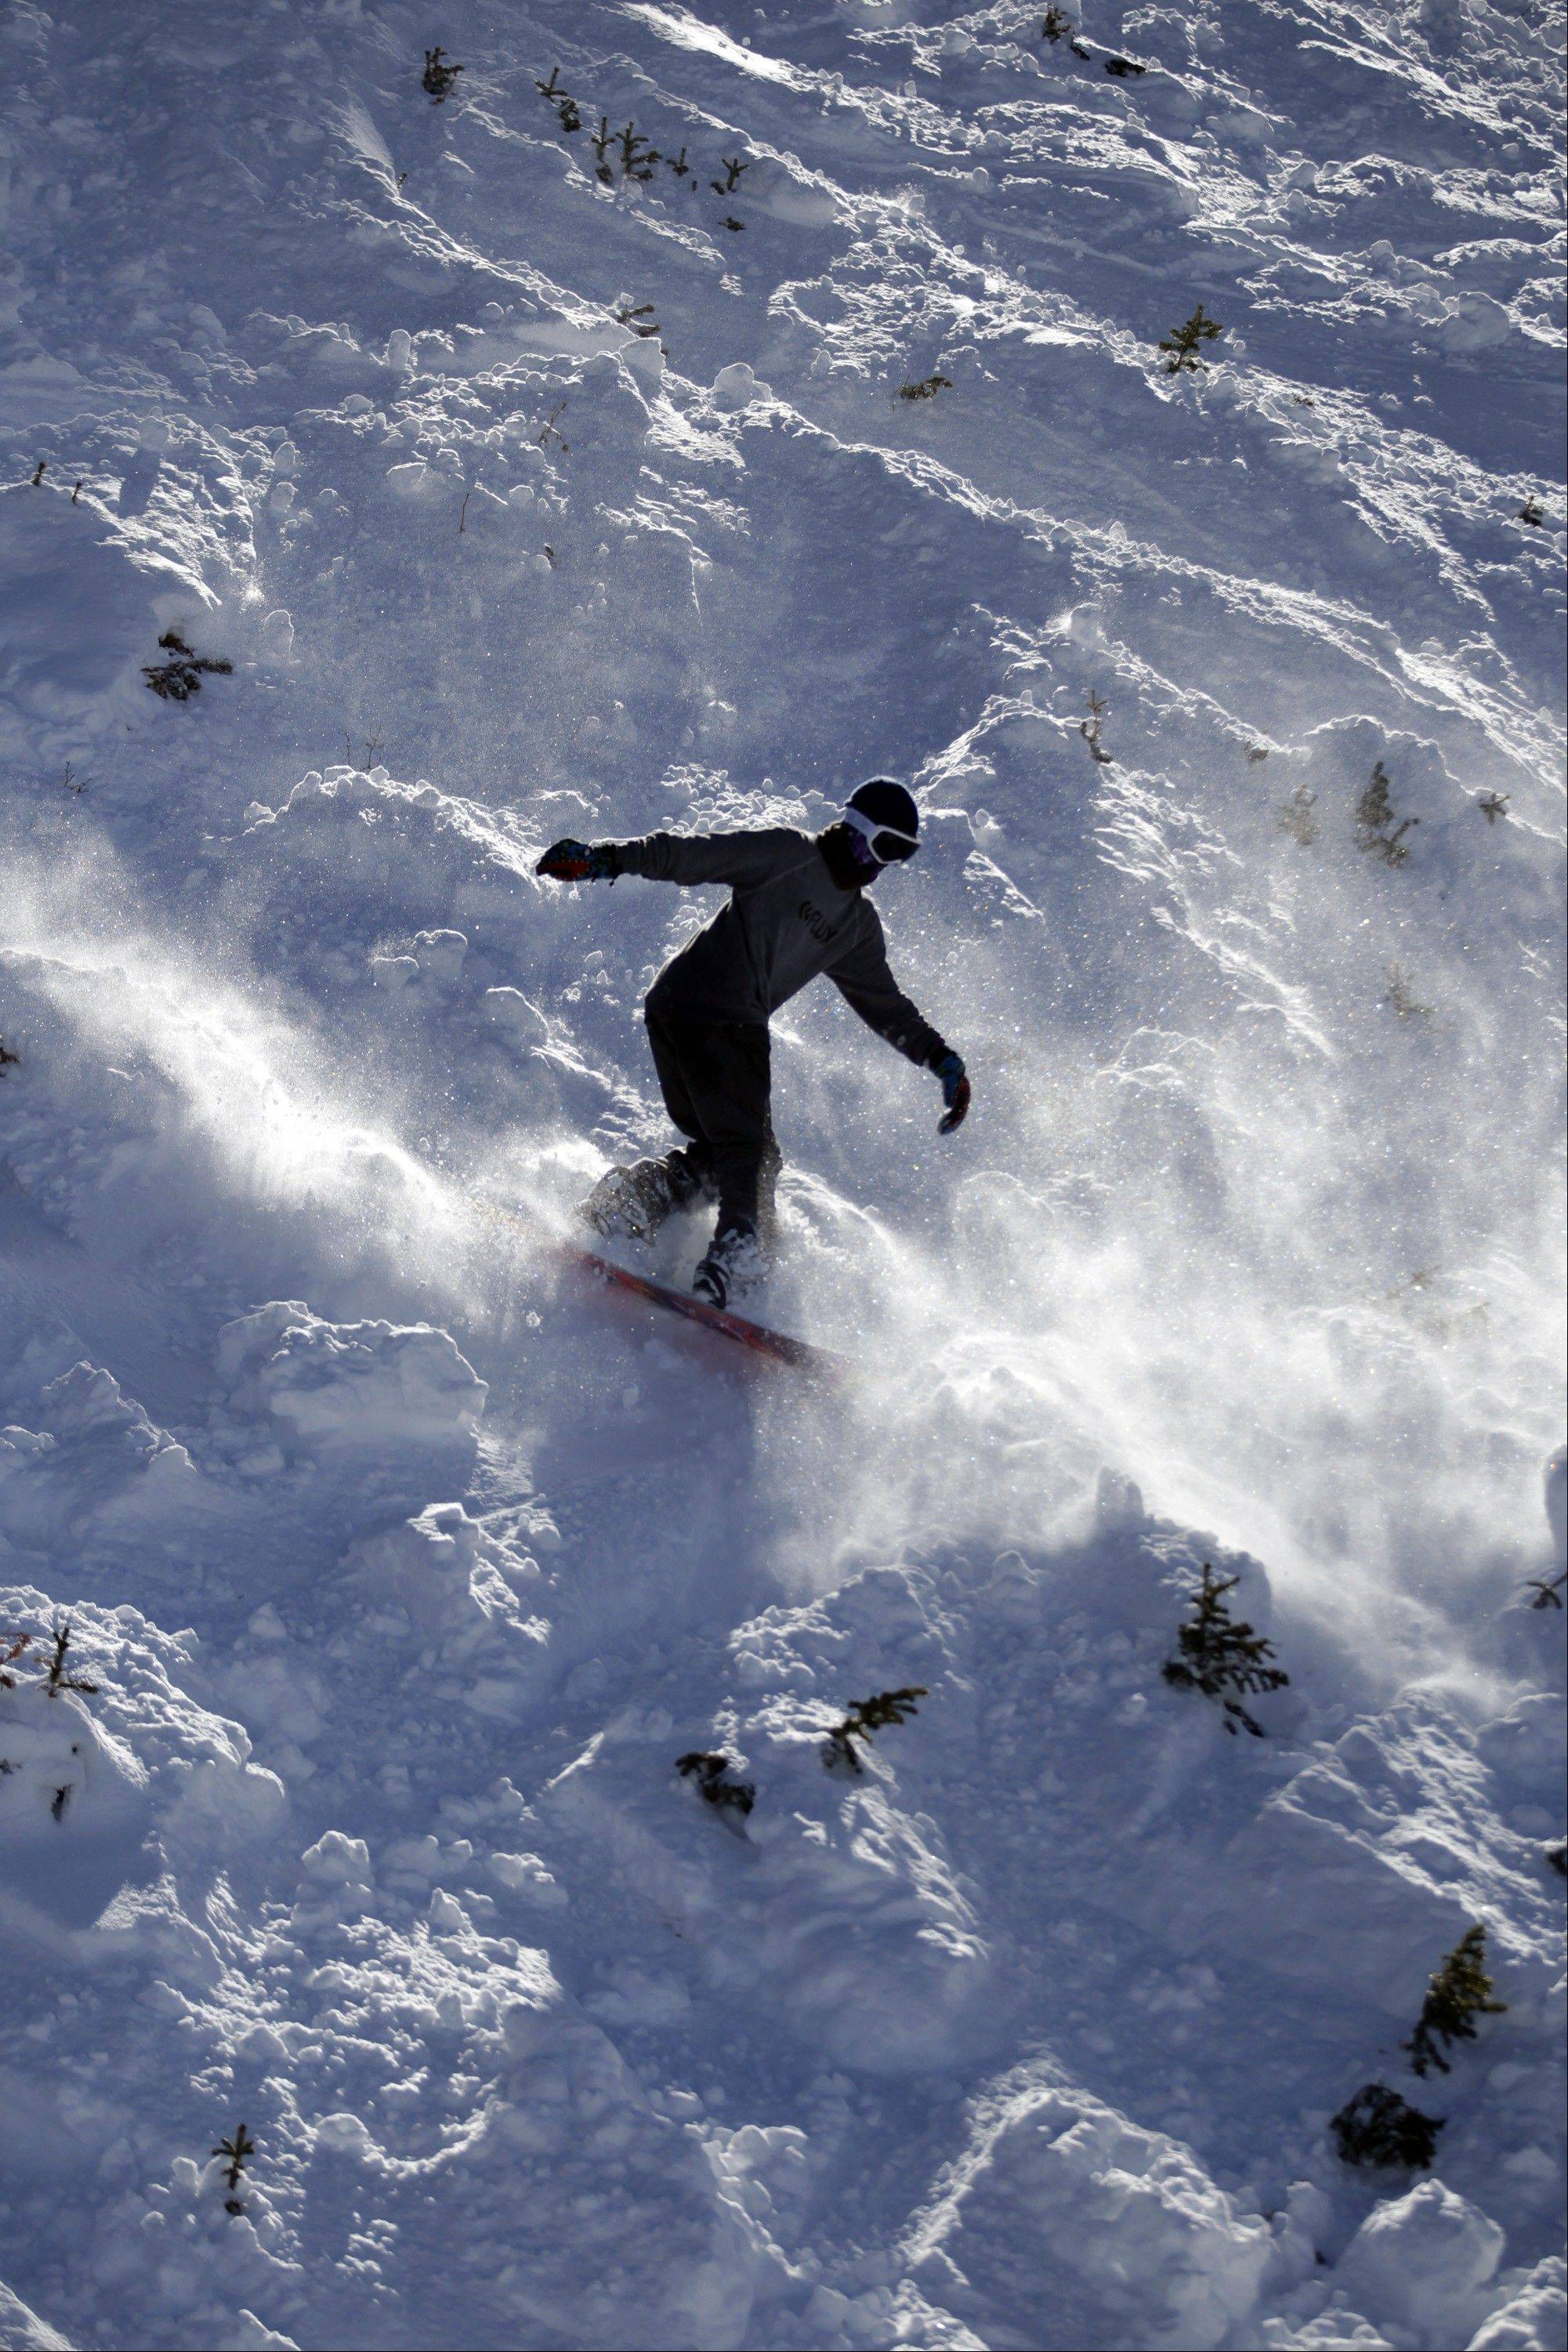 A snowboarder goes down a slope at the Brighton Ski Resort along the Wasatch Range in Utah.